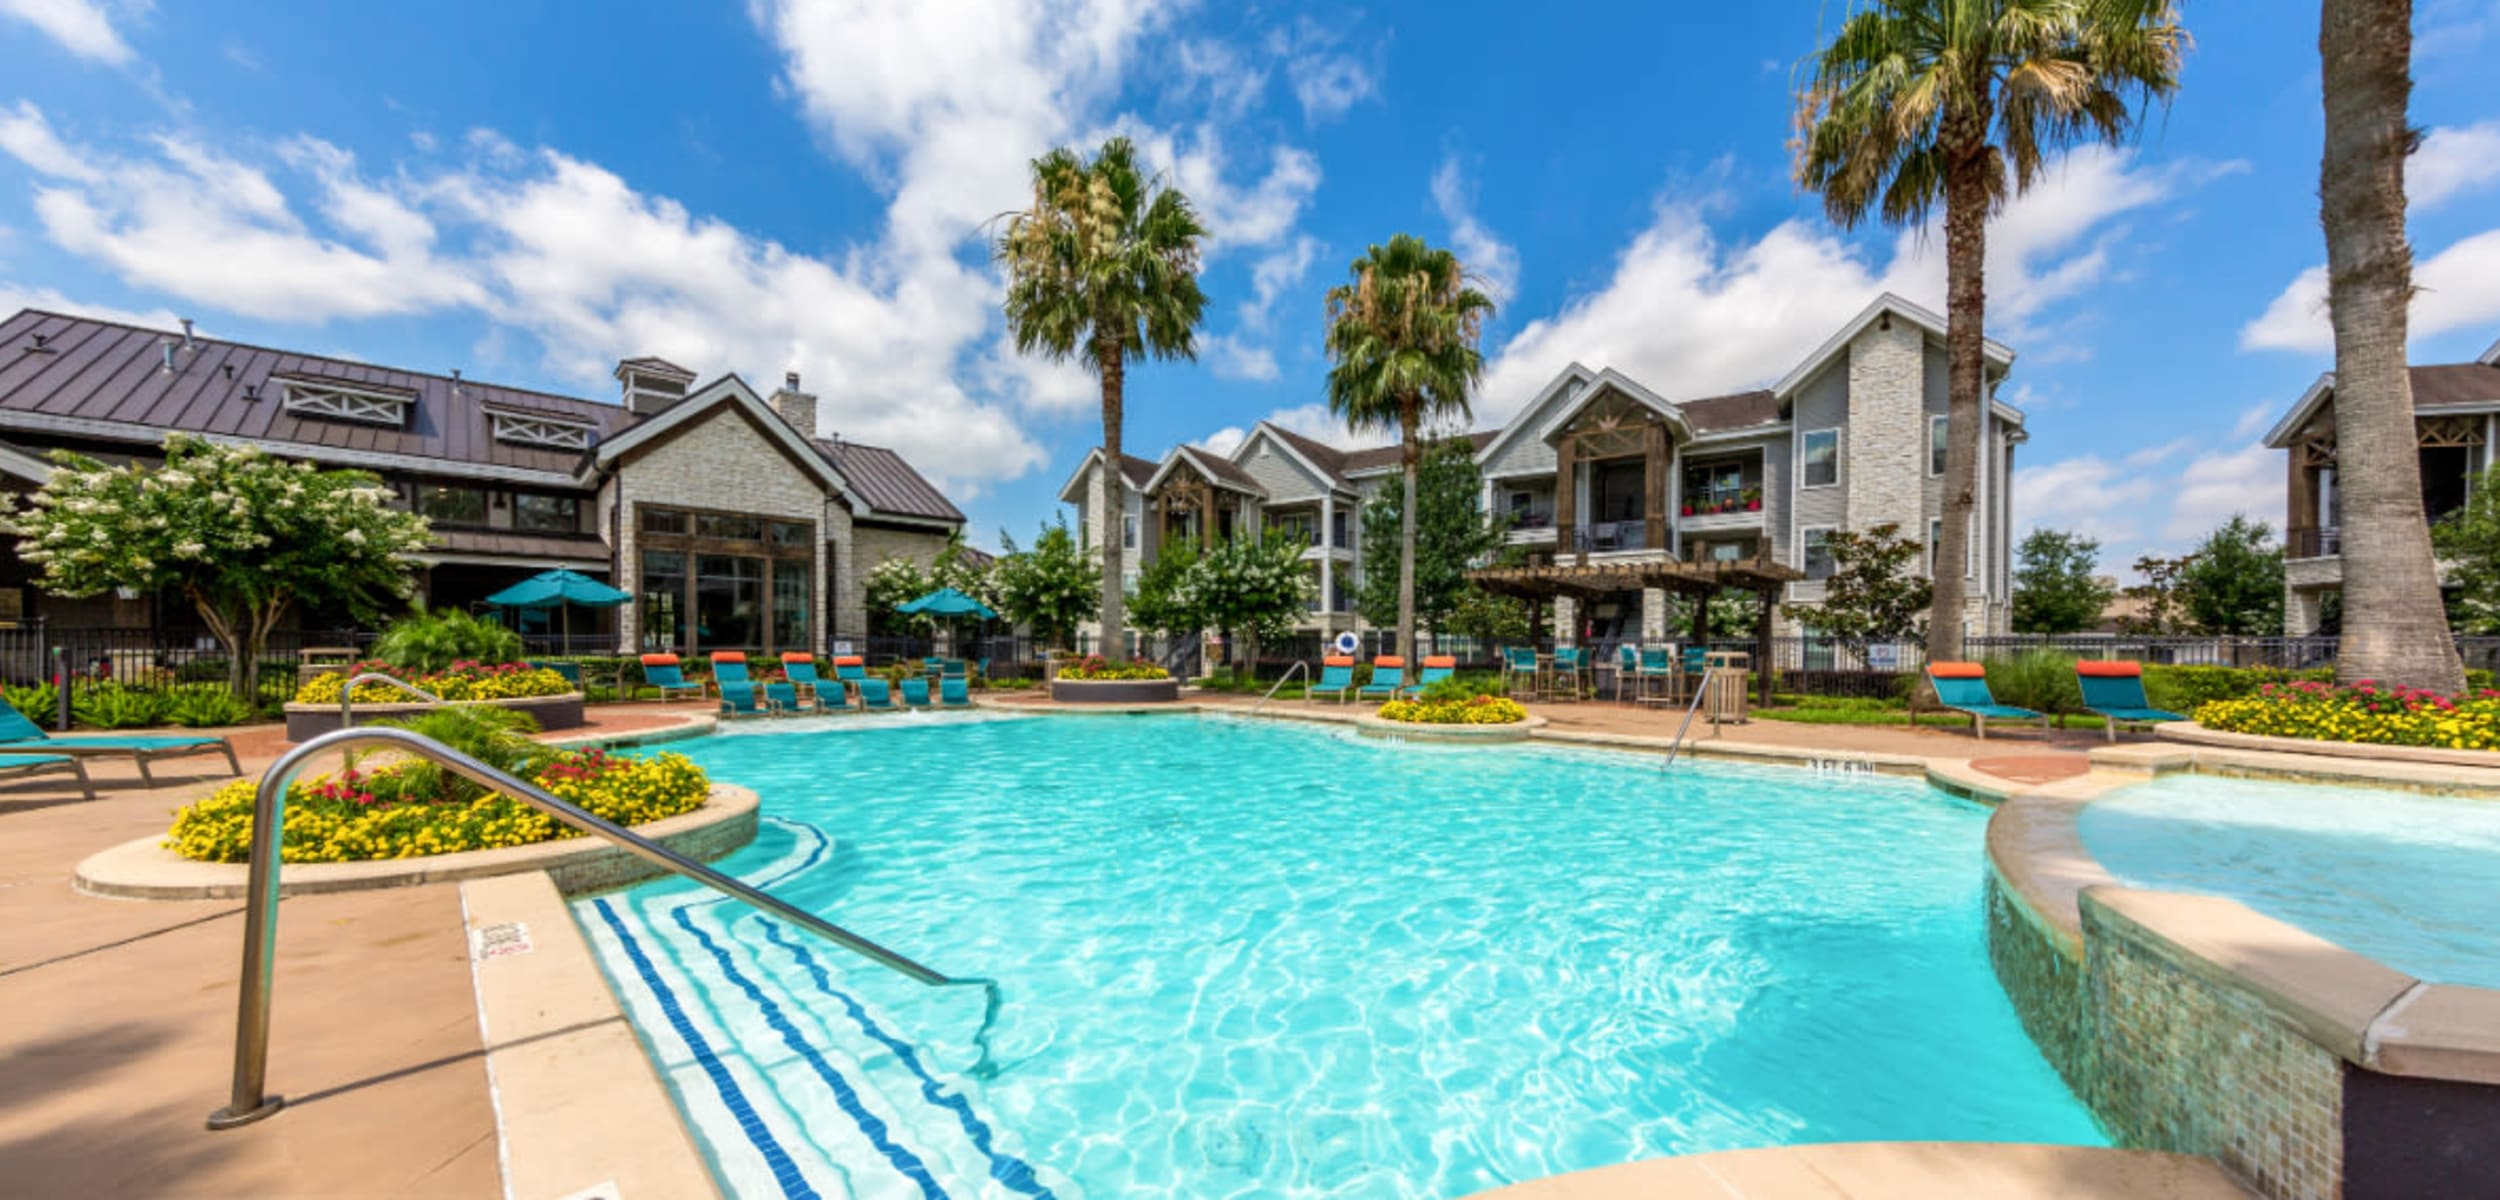 Resort style swimming pool surounded by lounge chairs at Marquis at Sugar Land in Sugar Land, Texas